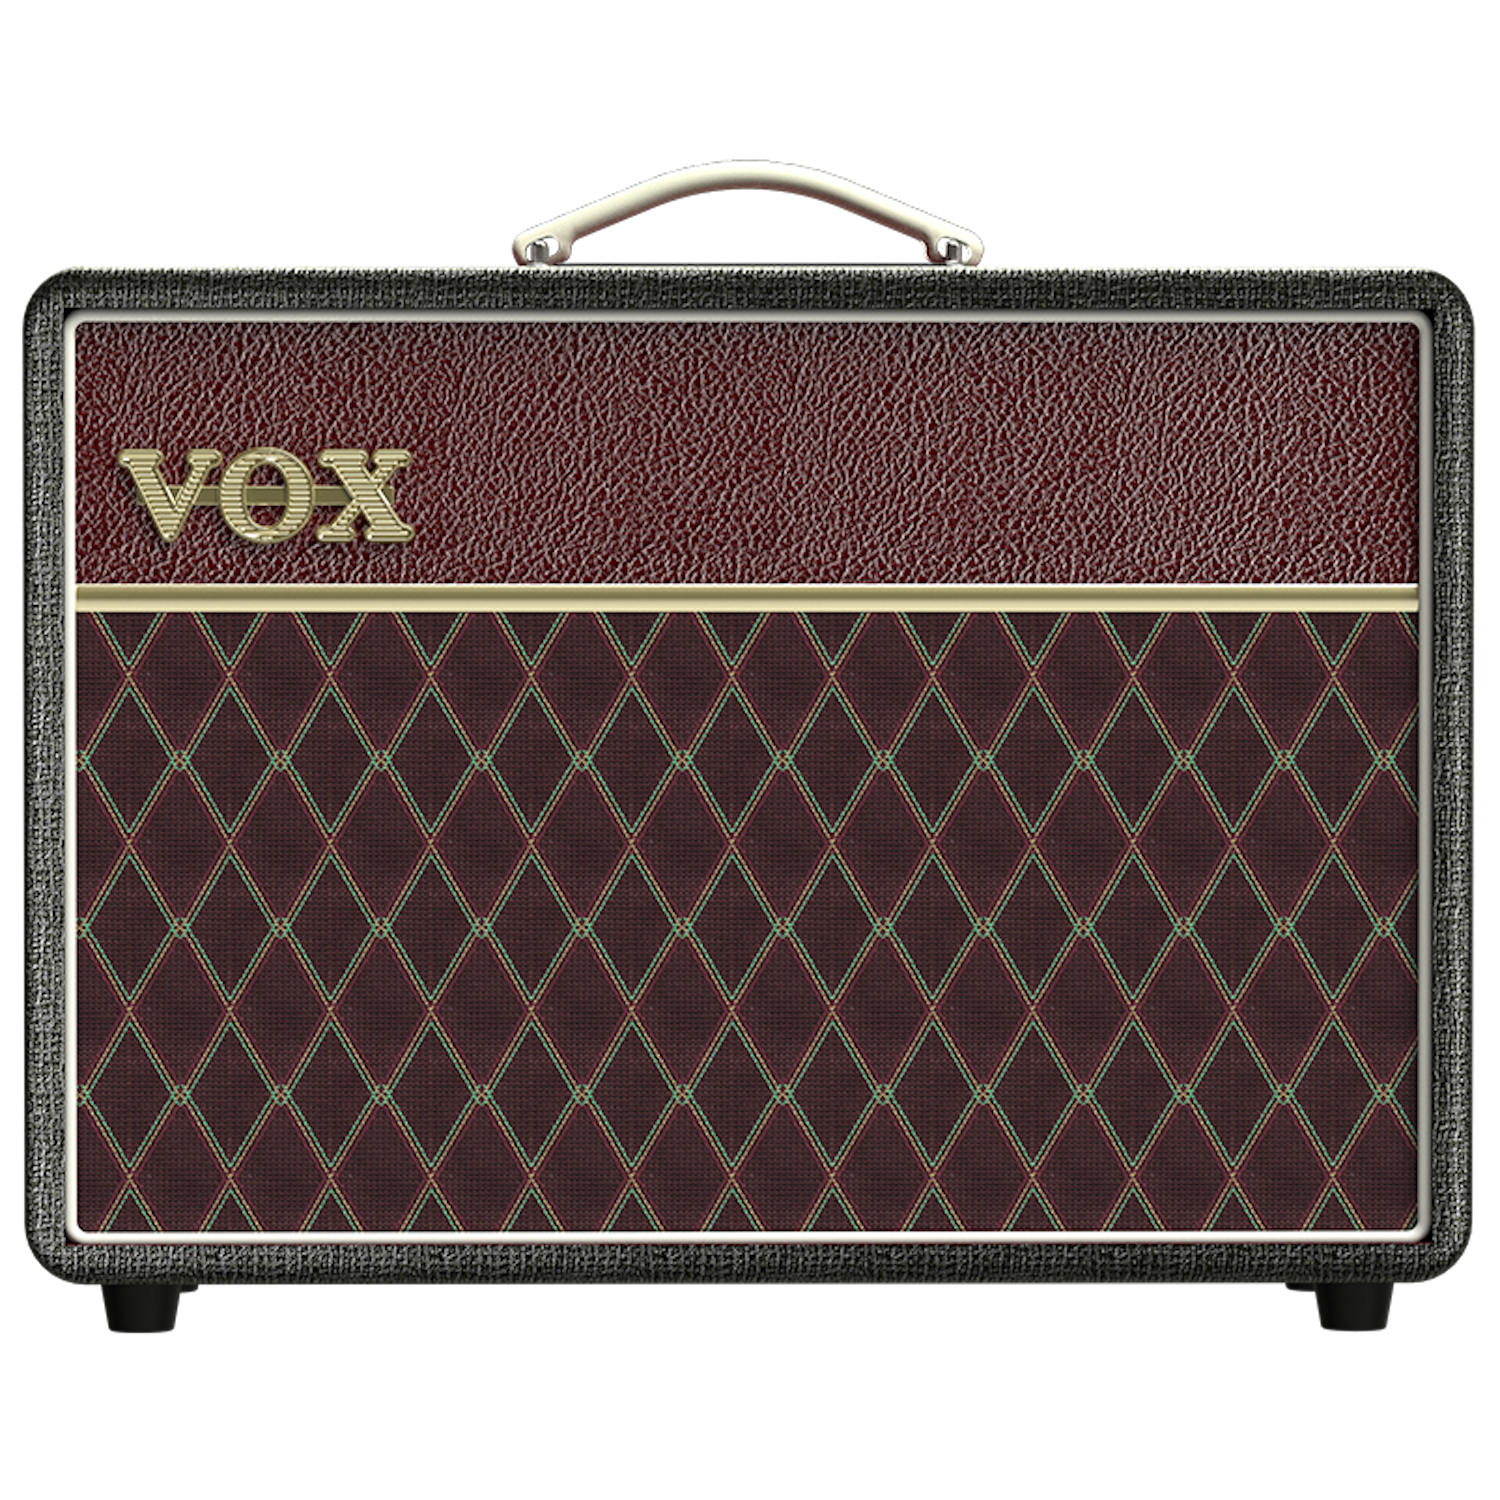 Vox AC10C1-TTBM Two Tone Black and Maroon Guitar Amplifier